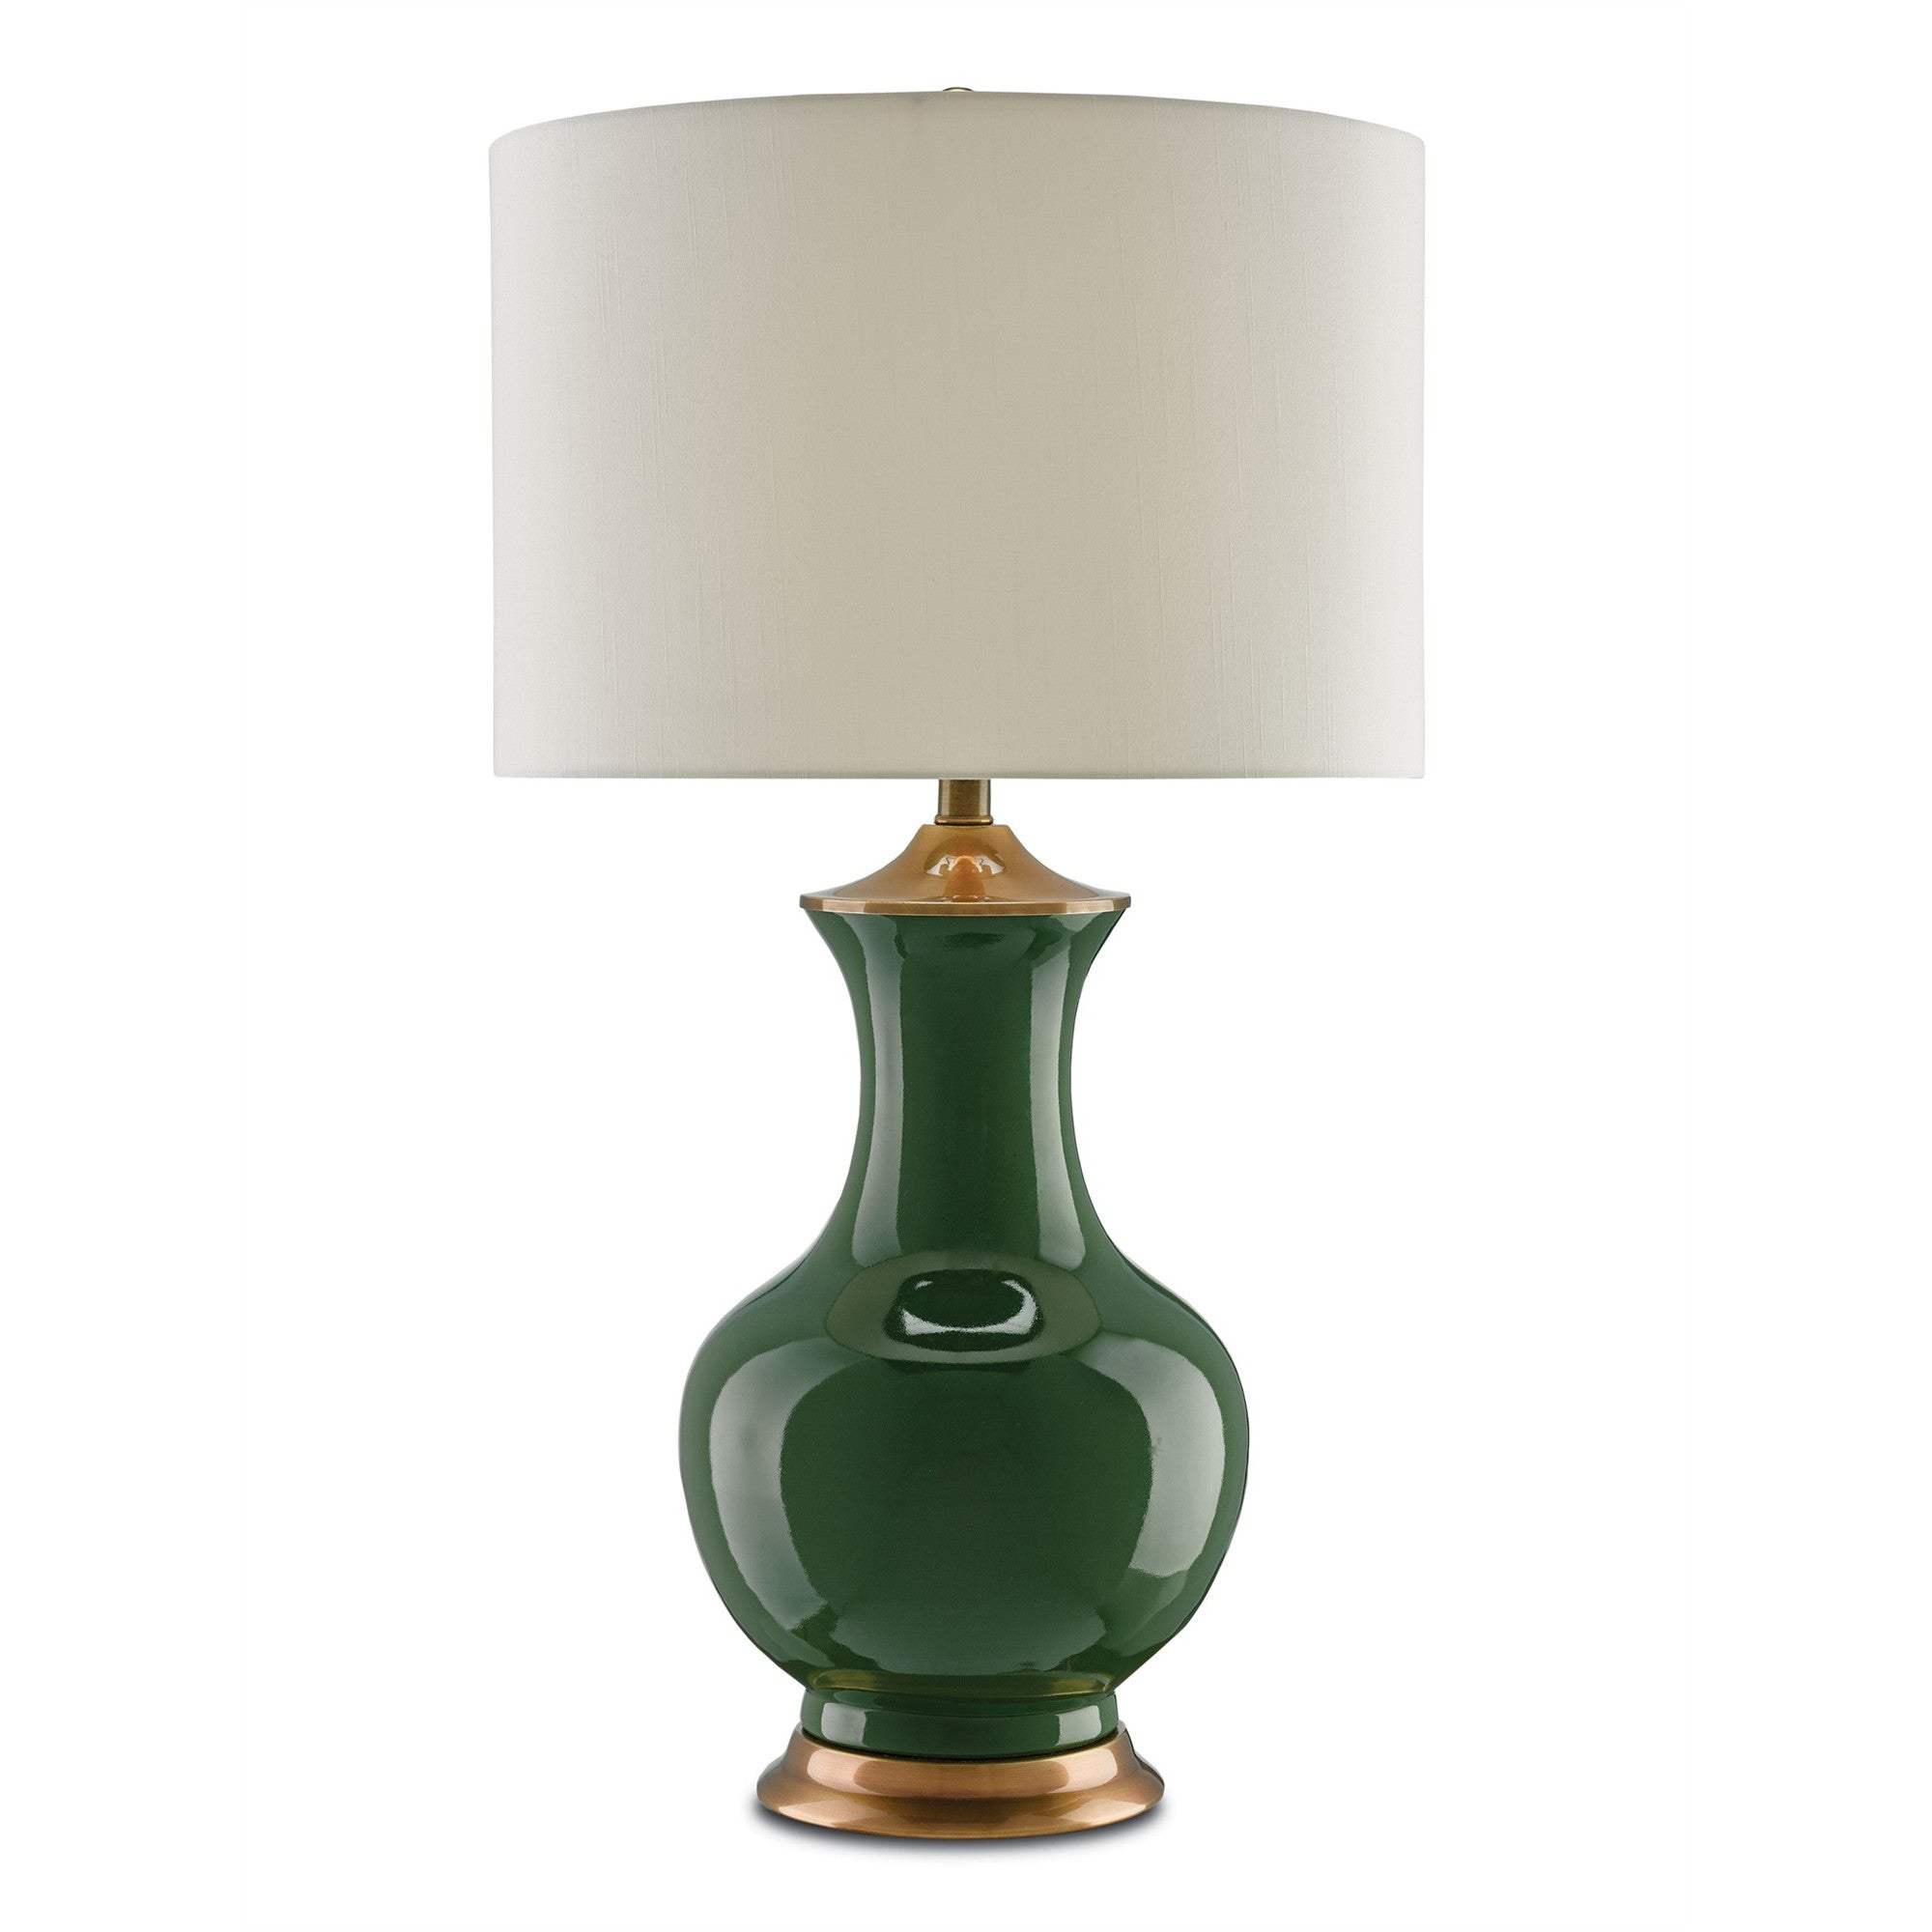 Currey and Co - Lilou Table Lamp, Green